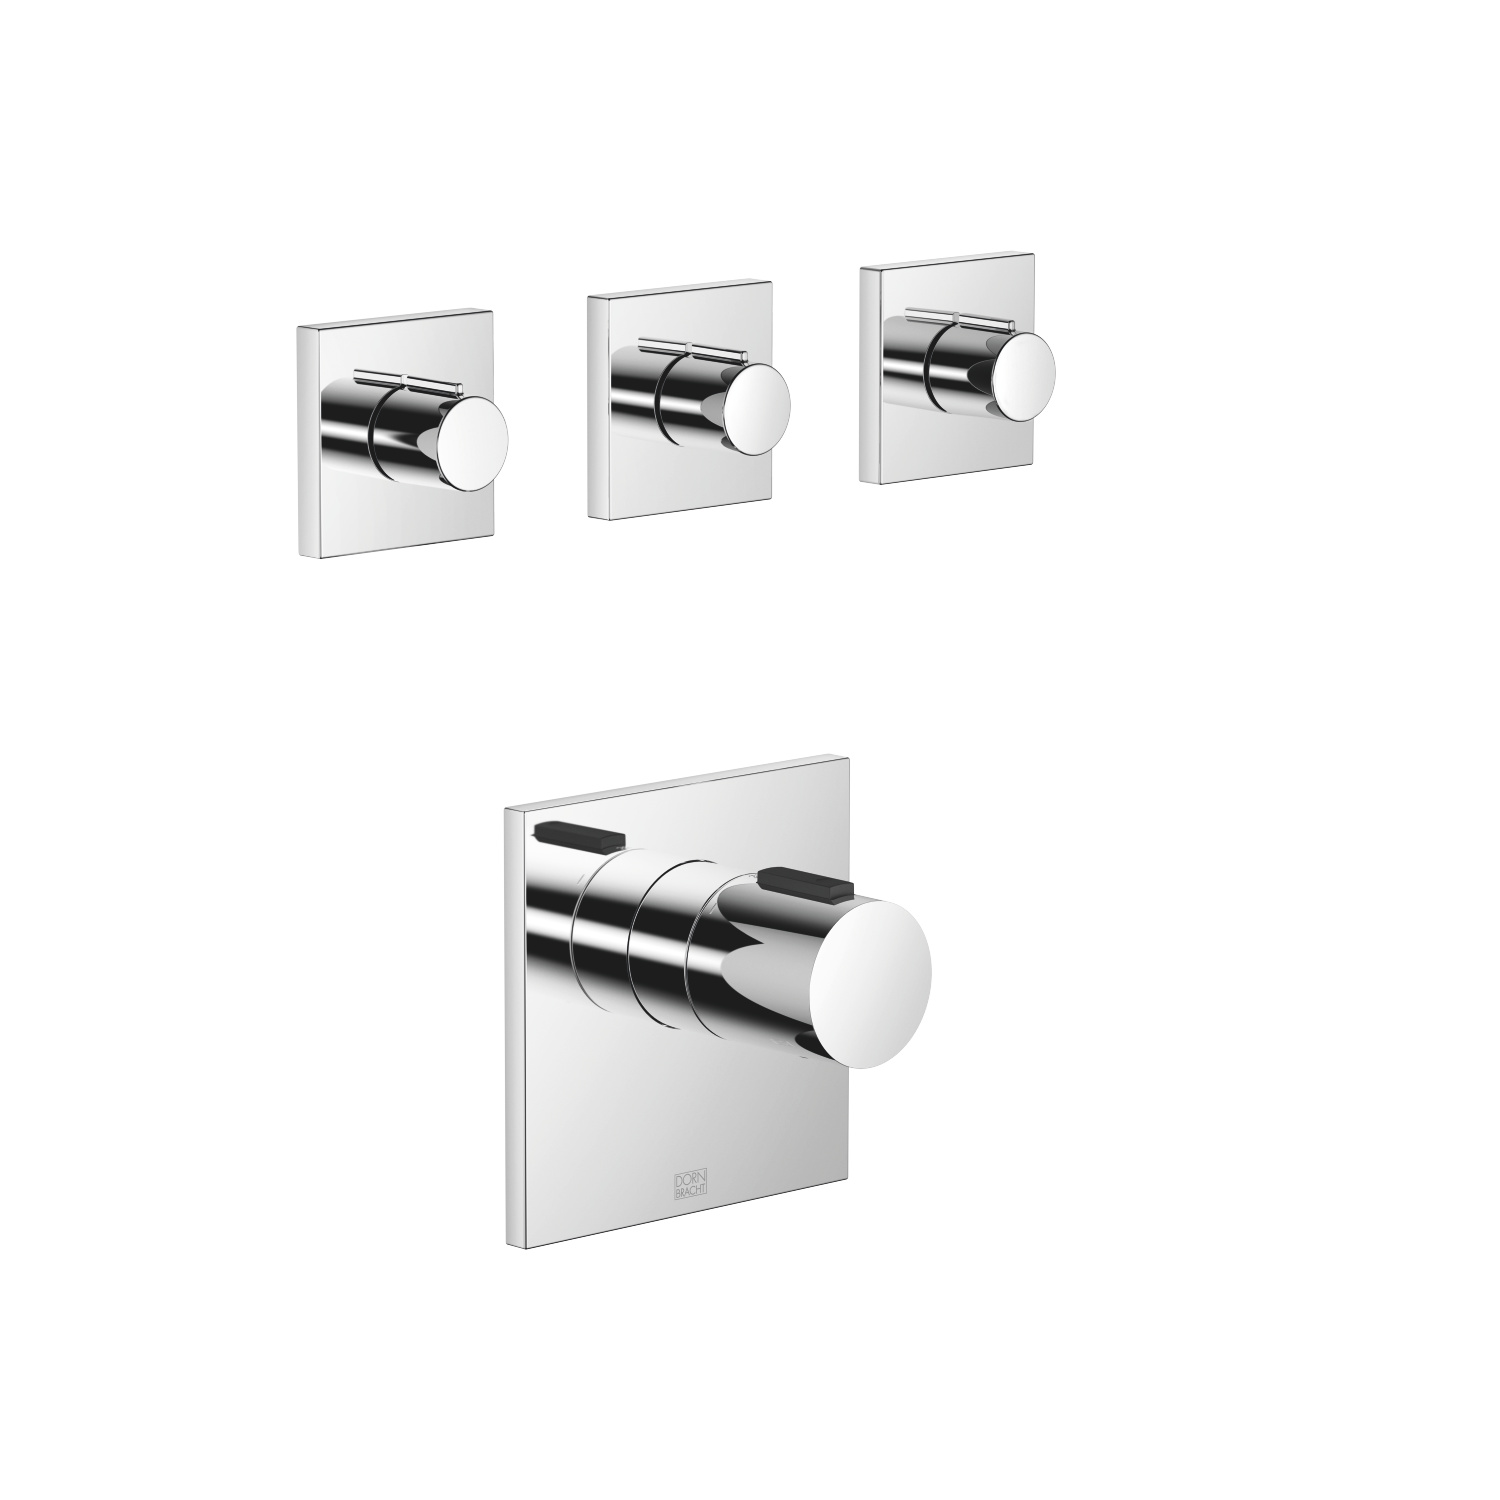 xTOOL thermostat with three volume controls - polished chrome